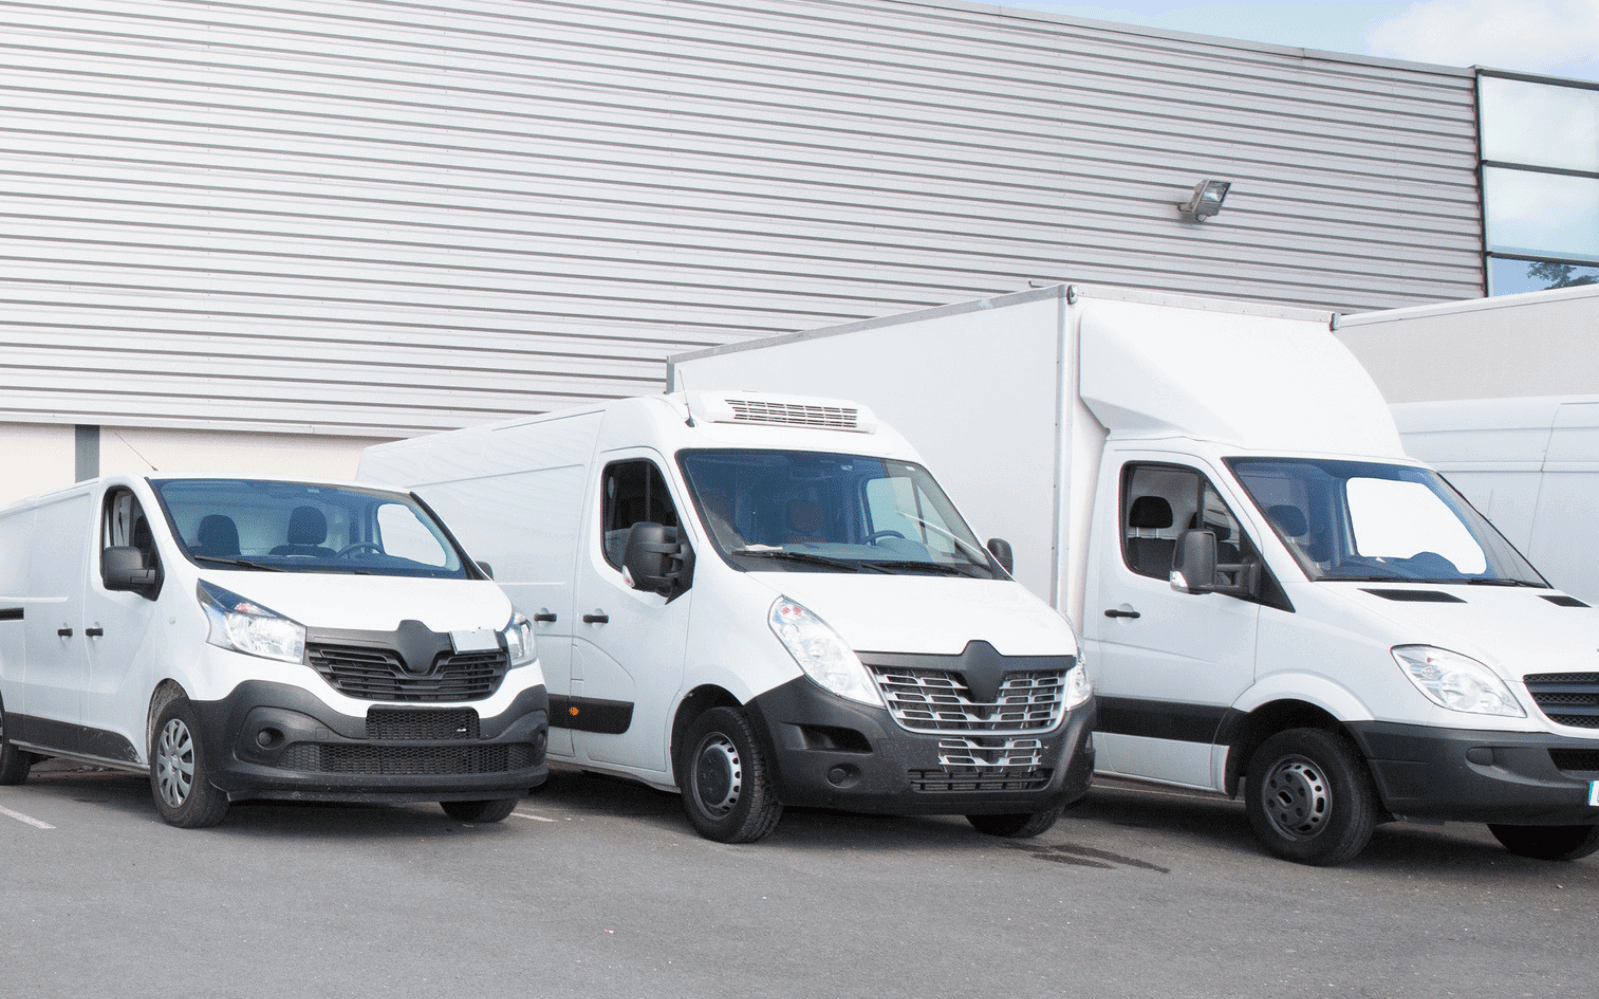 Small fleet of different sized vans